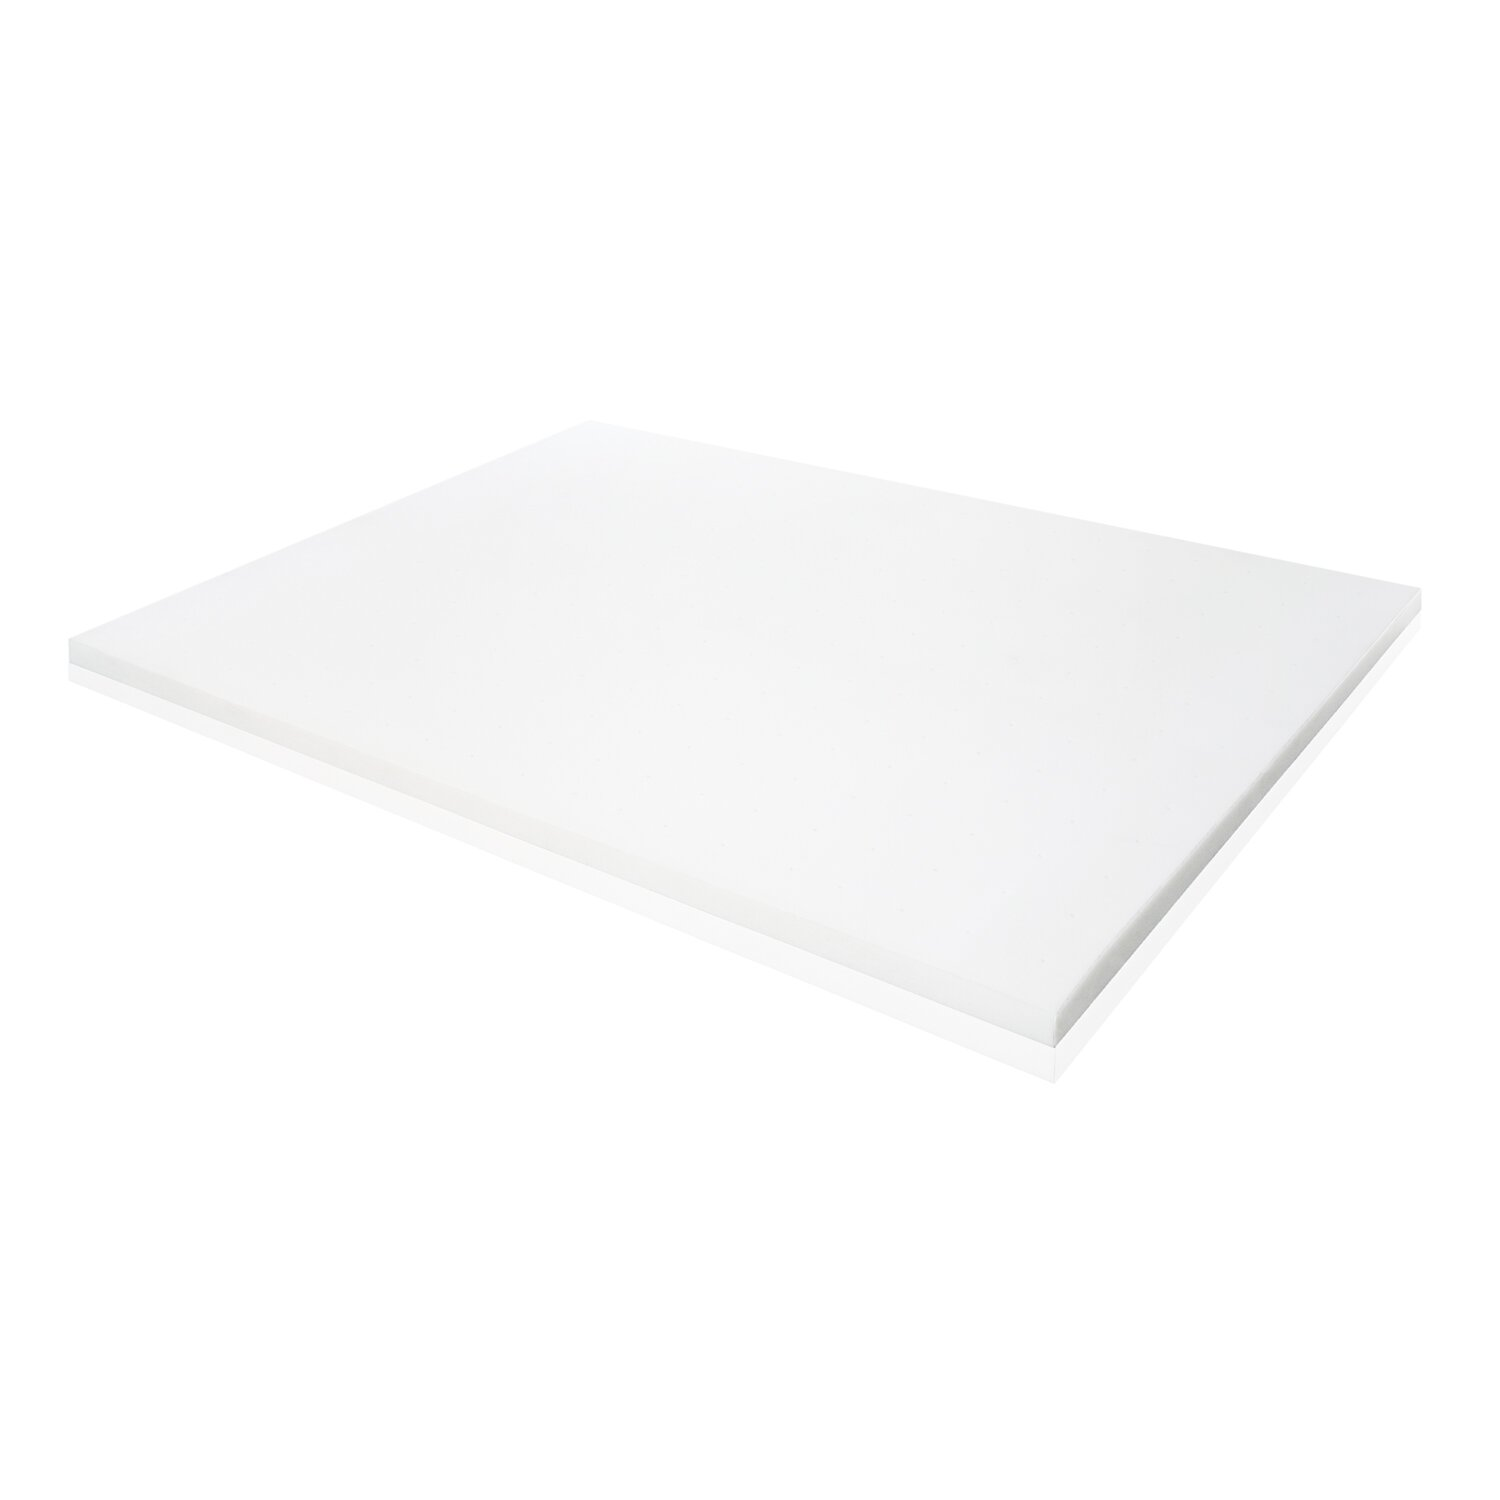 "Discount Customize Bed 14"" Pillow Top Convoluted Foam To Relieve Pressure Points And  compare smart memory foam  price compare sealy posturepedic massachusetts avenue cushion firm mattress (queen mattress only)   innovation mattress 8"" queen   Provide Body-Contouring Comfort With..."